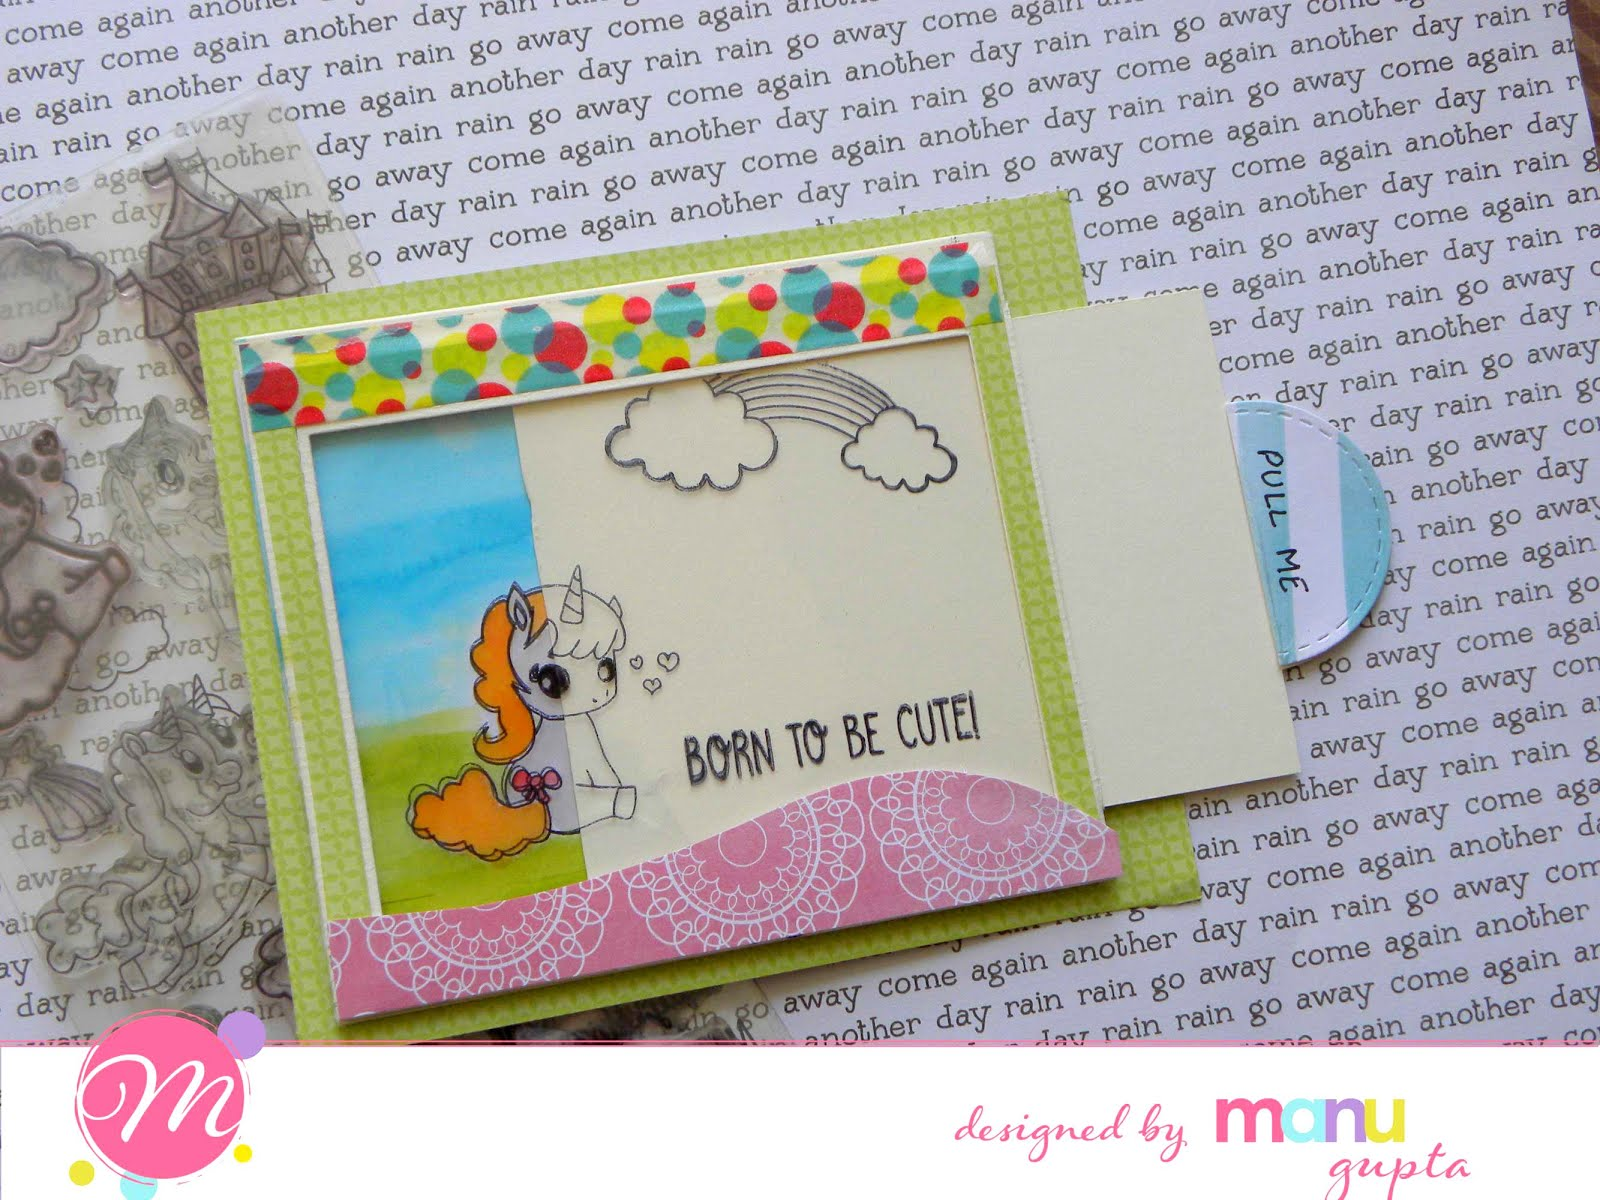 Mudra Craft Stamps Interactive Cards The Fun Way To Make Cards